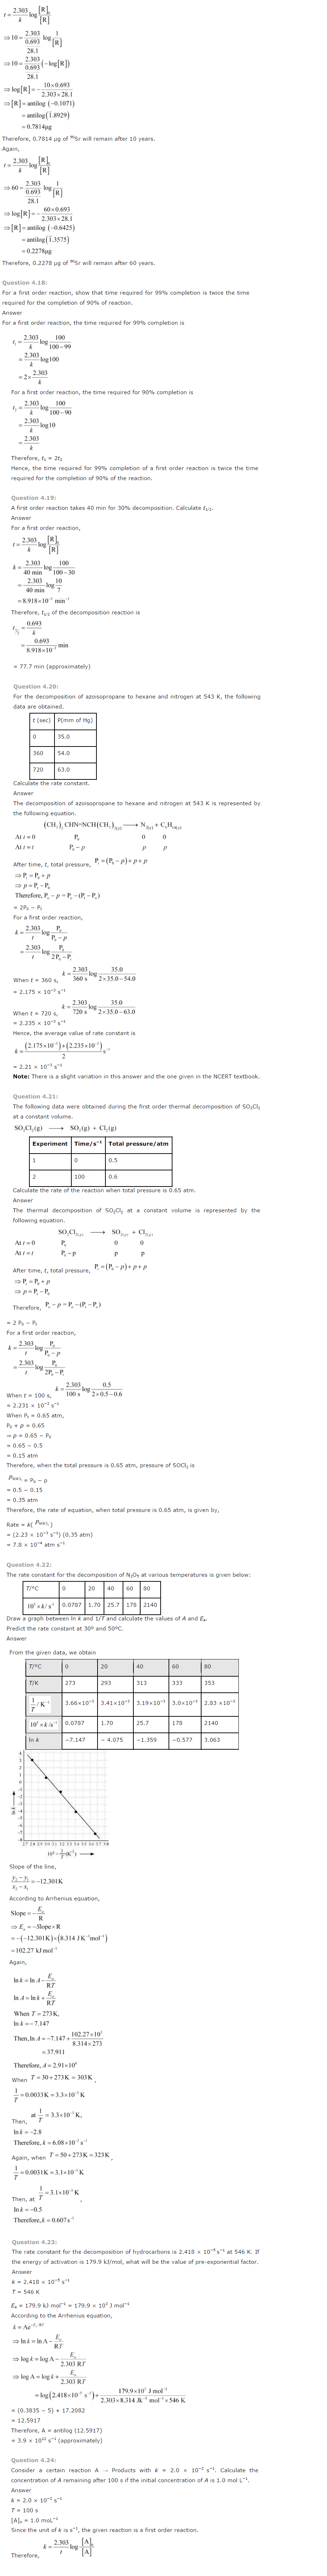 NCERT Solutions for Class 12th Chemistry Chapter 4 Chemical Kinetics Image by AglaSem